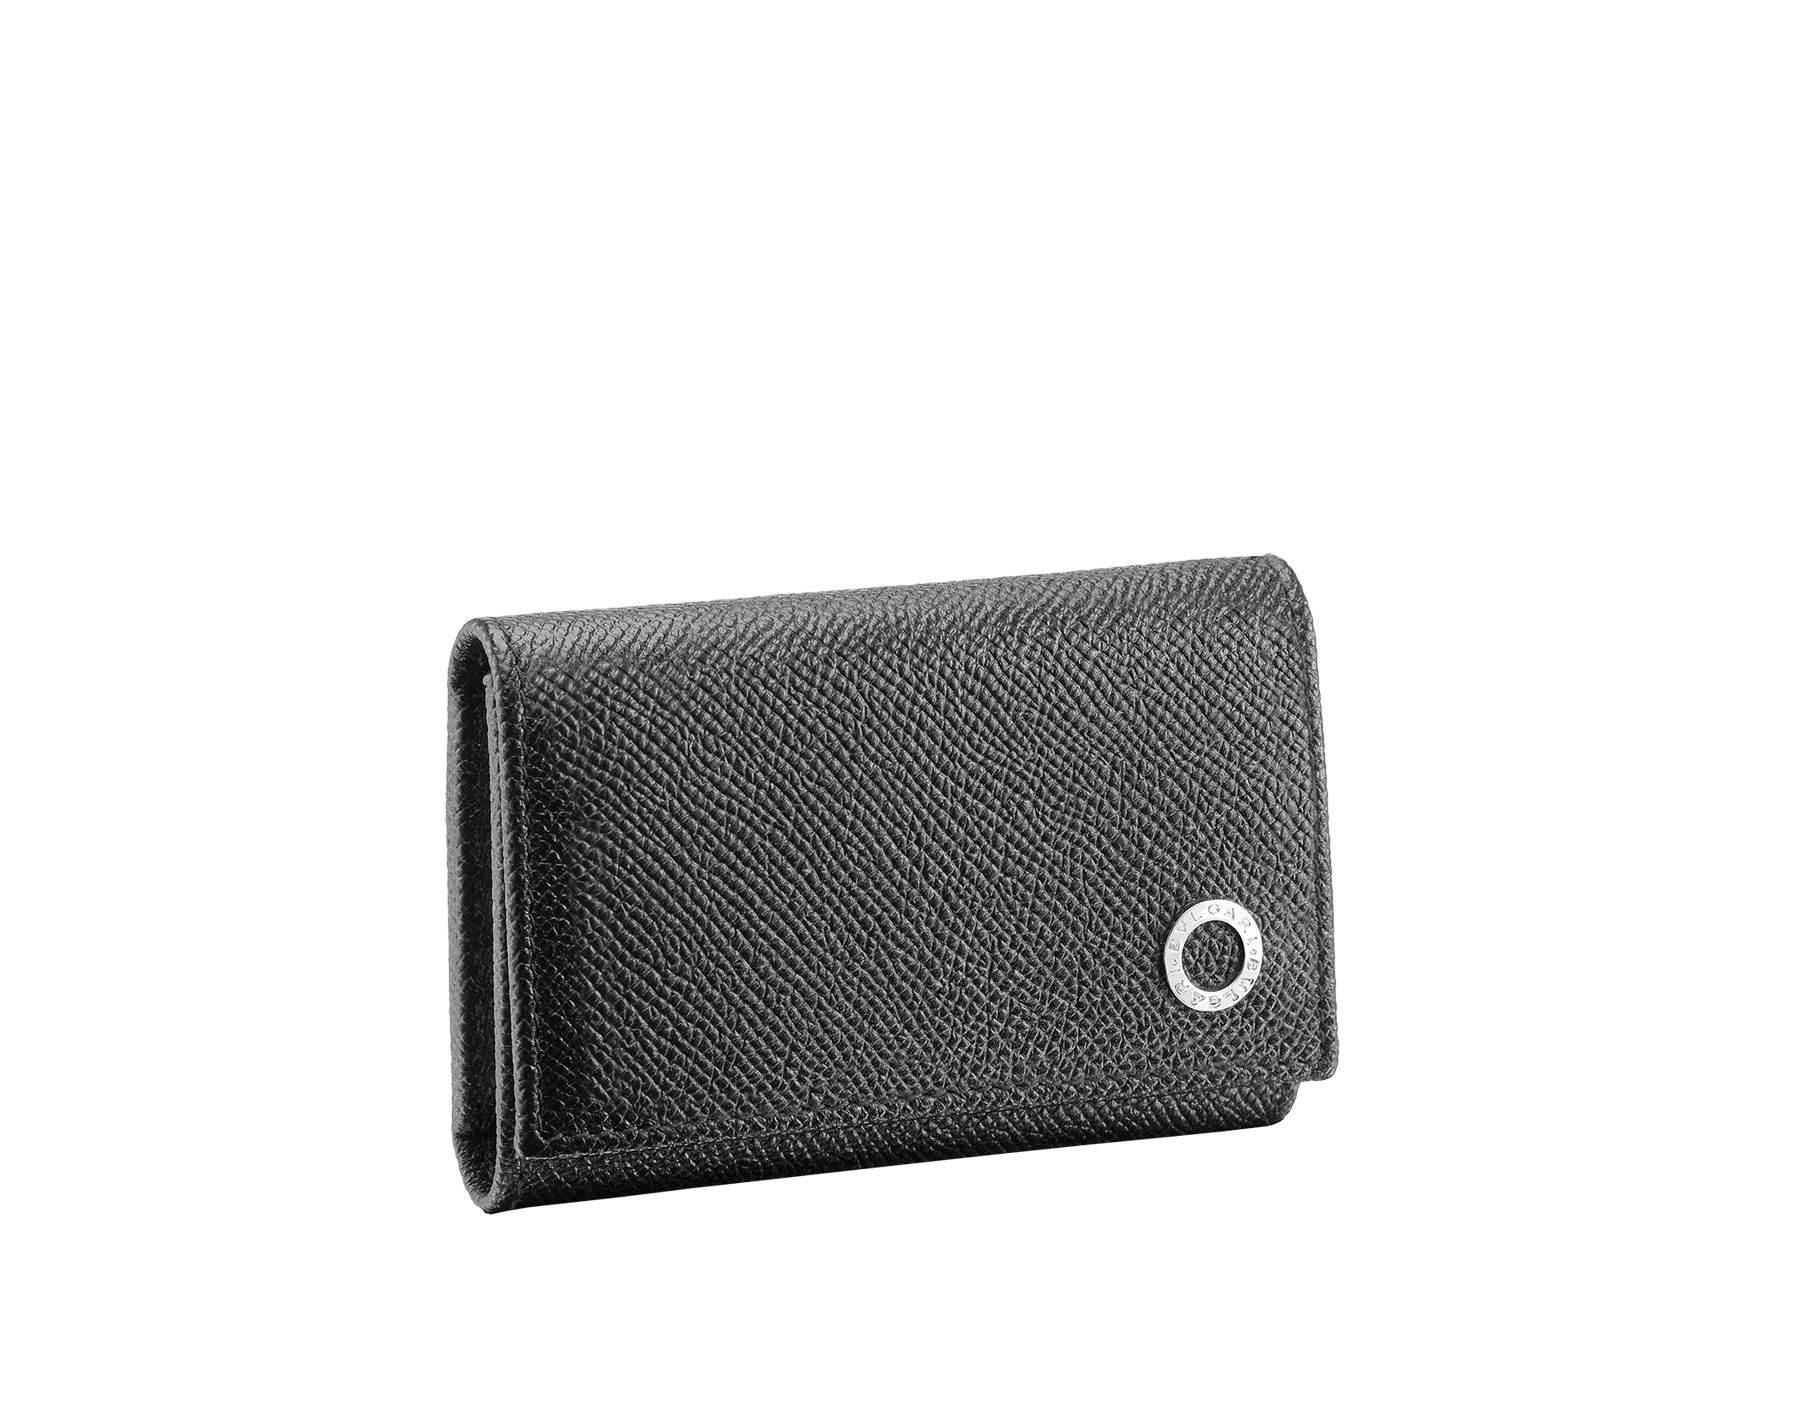 BVLGARI BVLGARI double keyhoder in black grain calf leather. Detachable car keyholder in palladium plated brass. 288605 image 1